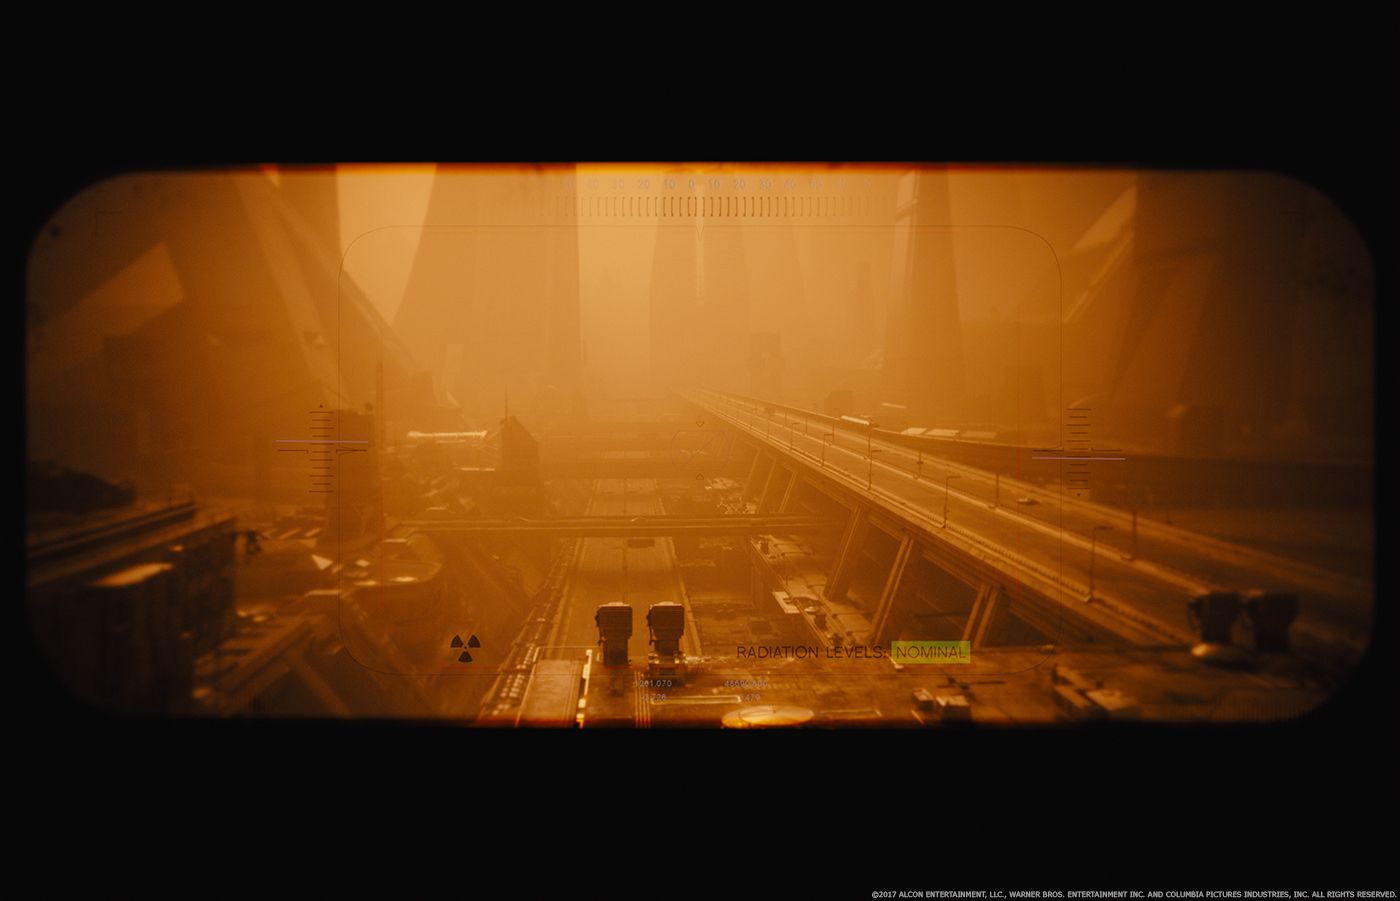 56a03bd3dc Imgur: The most awesome images on the Internet | Blade Runner 2049 ...